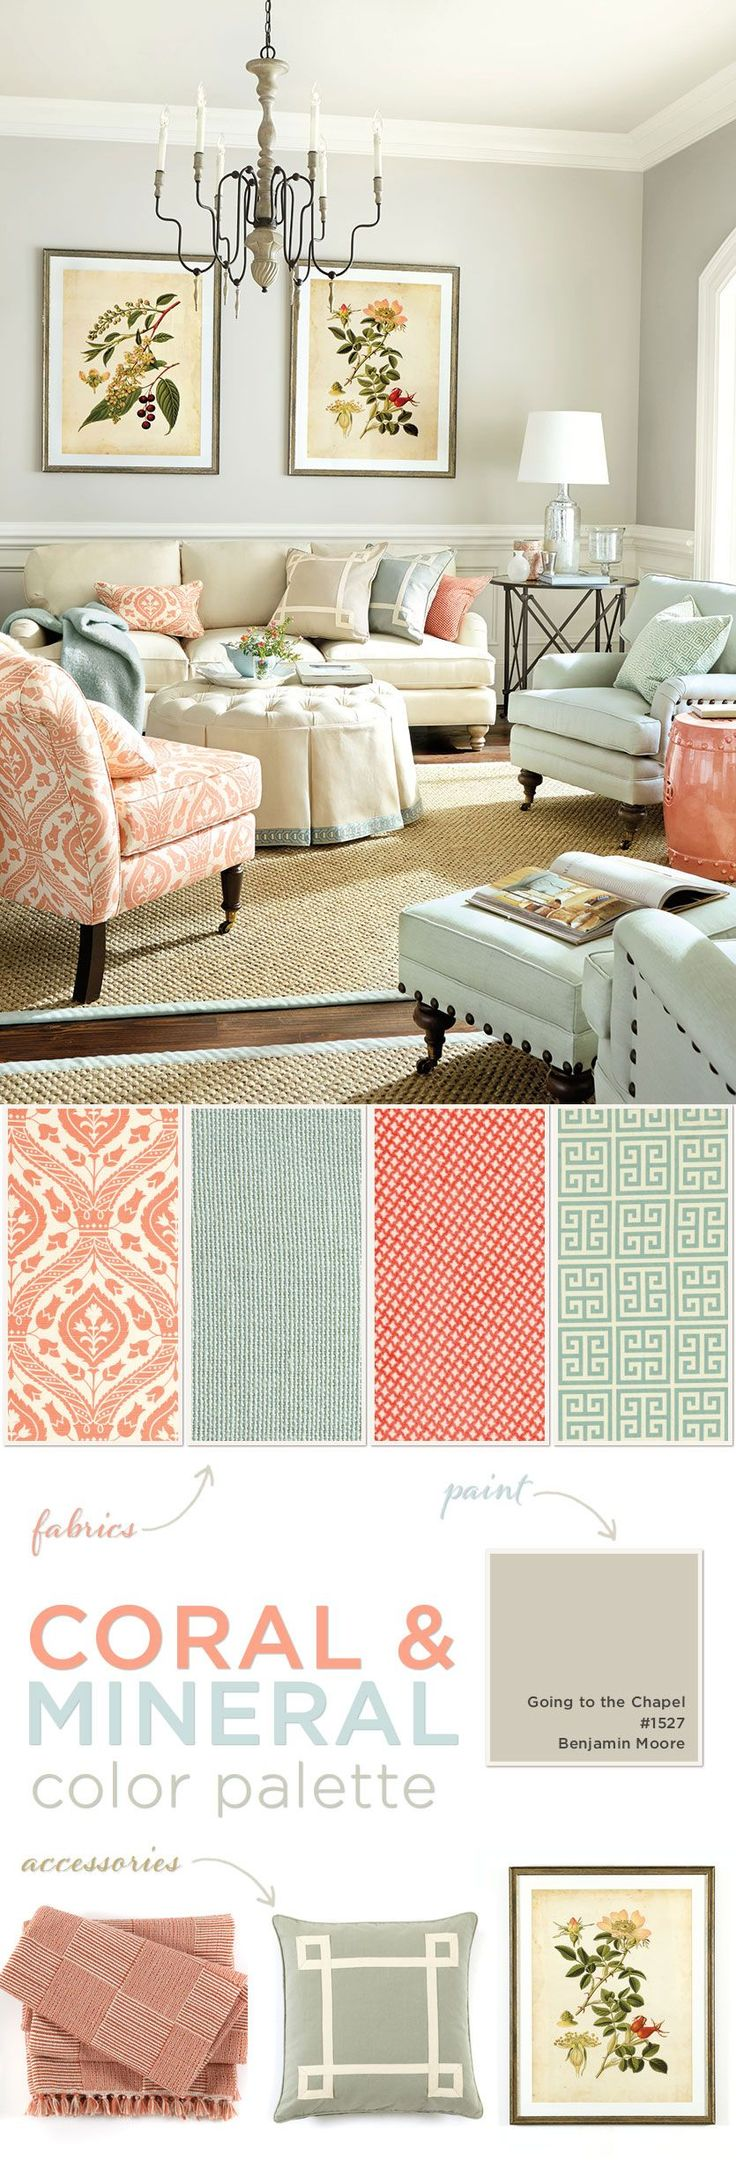 Living room color palette of coral and mineral-for the walls try Benjamin Moore Going To The Chapel